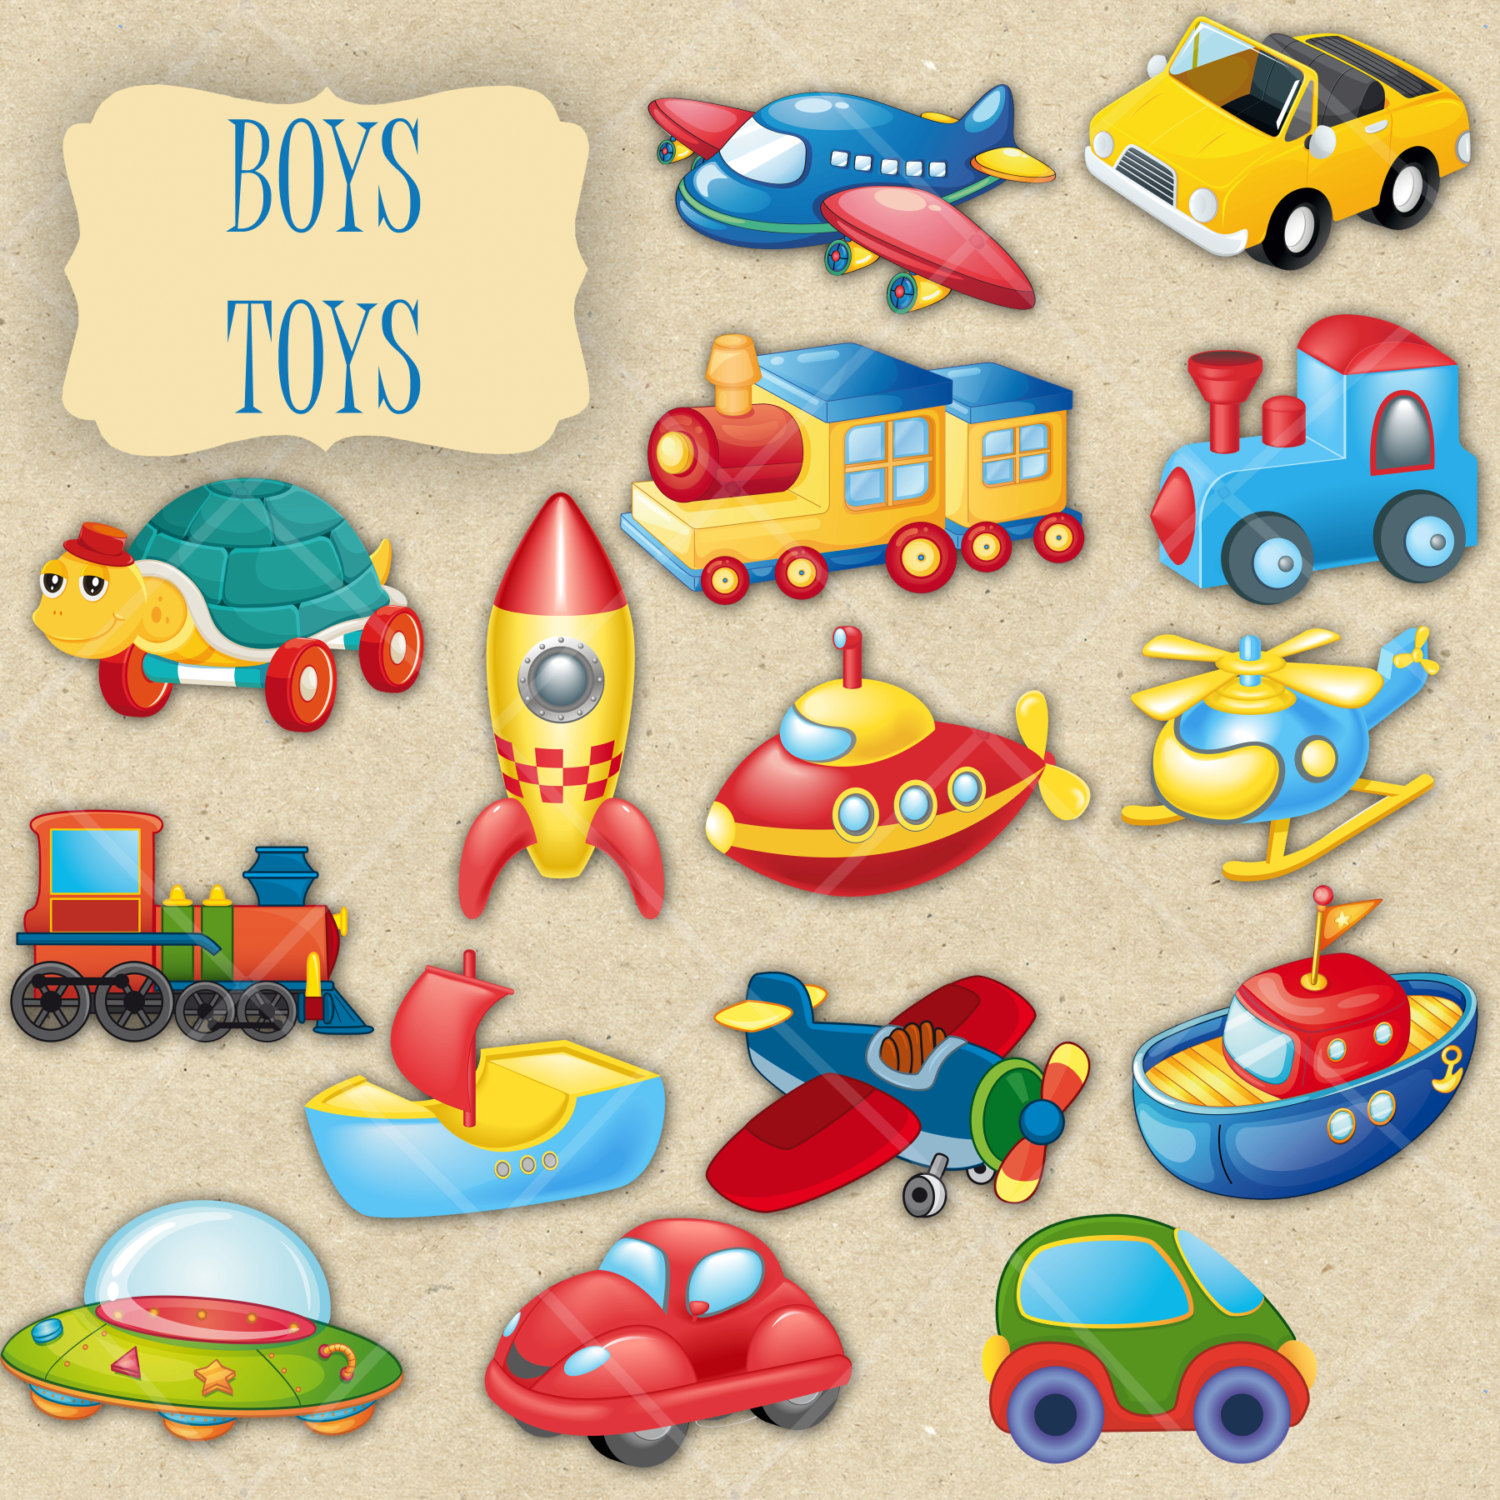 Art Toys For Boys : Boy toys clipart suggest